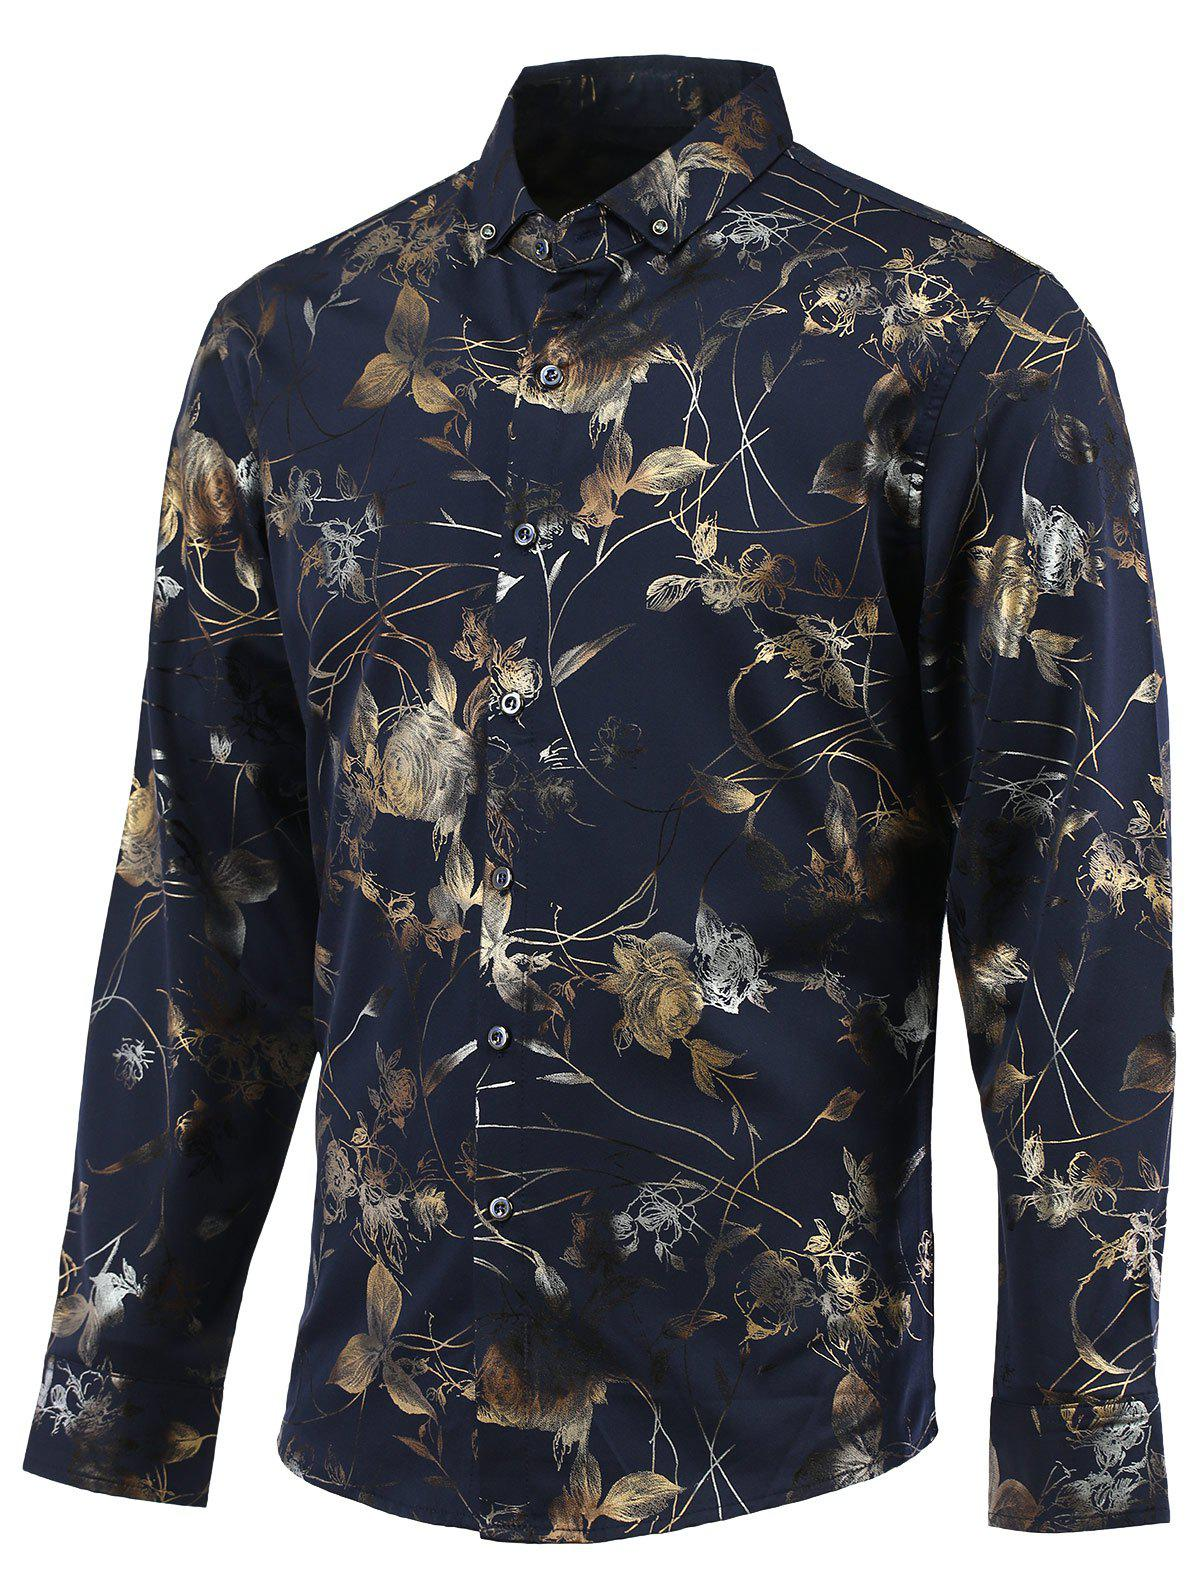 Golden Floral Print Turn-Down Collar Button-Down Long Sleeve Shirt - CADETBLUE 3XL